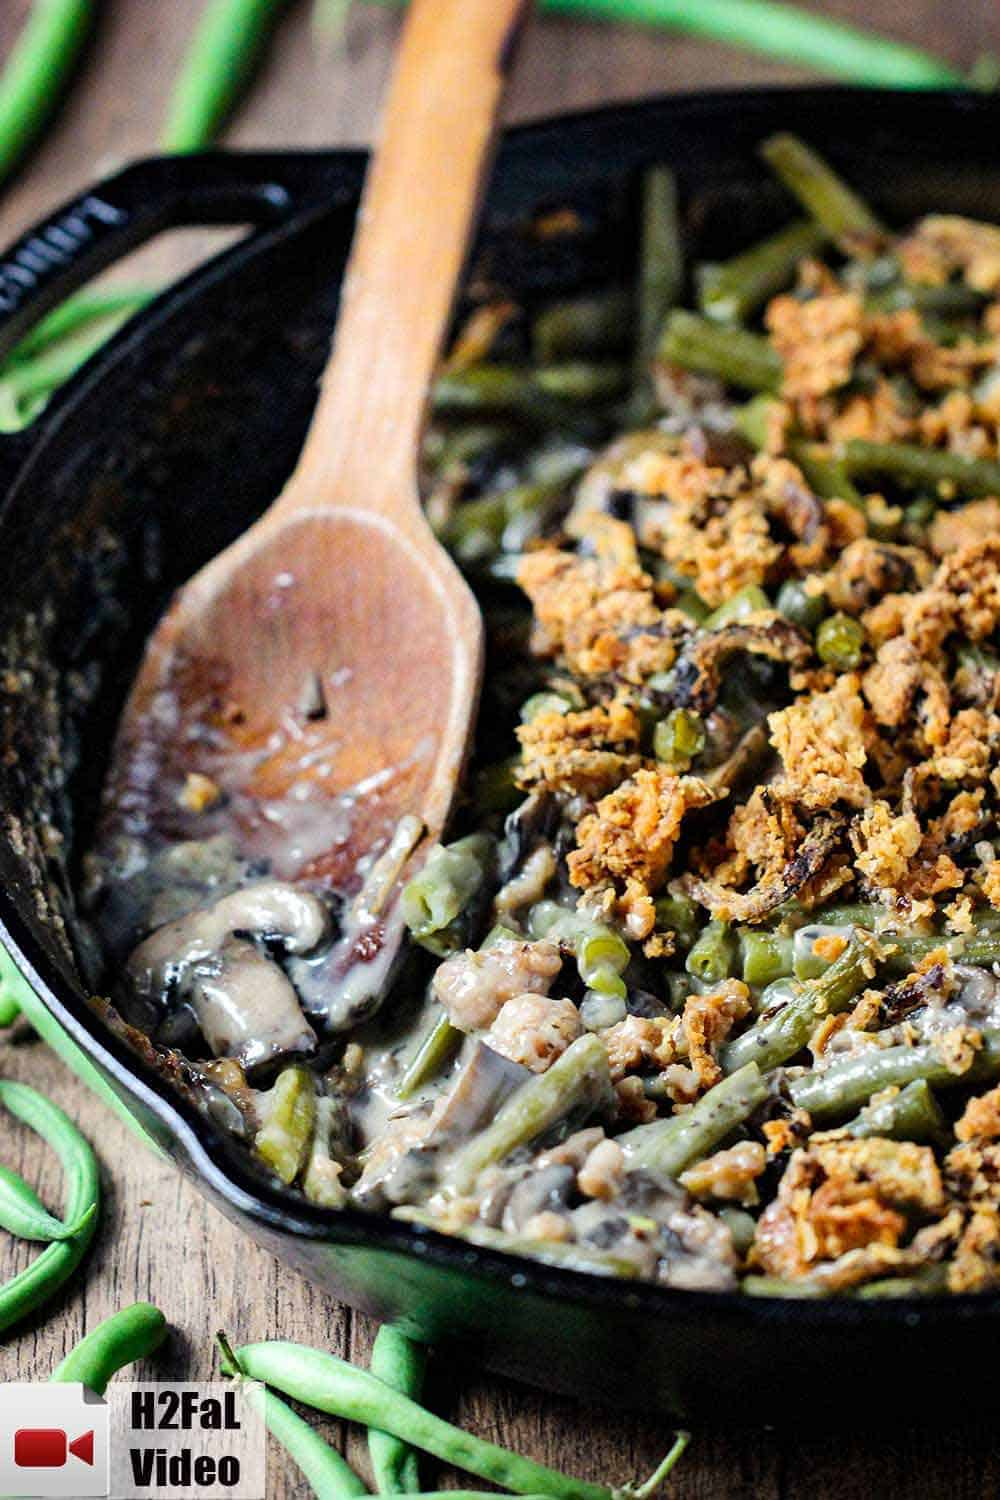 A large black cast iron skillet filled with gourmet green bean casserole with a wooden spoon in it.